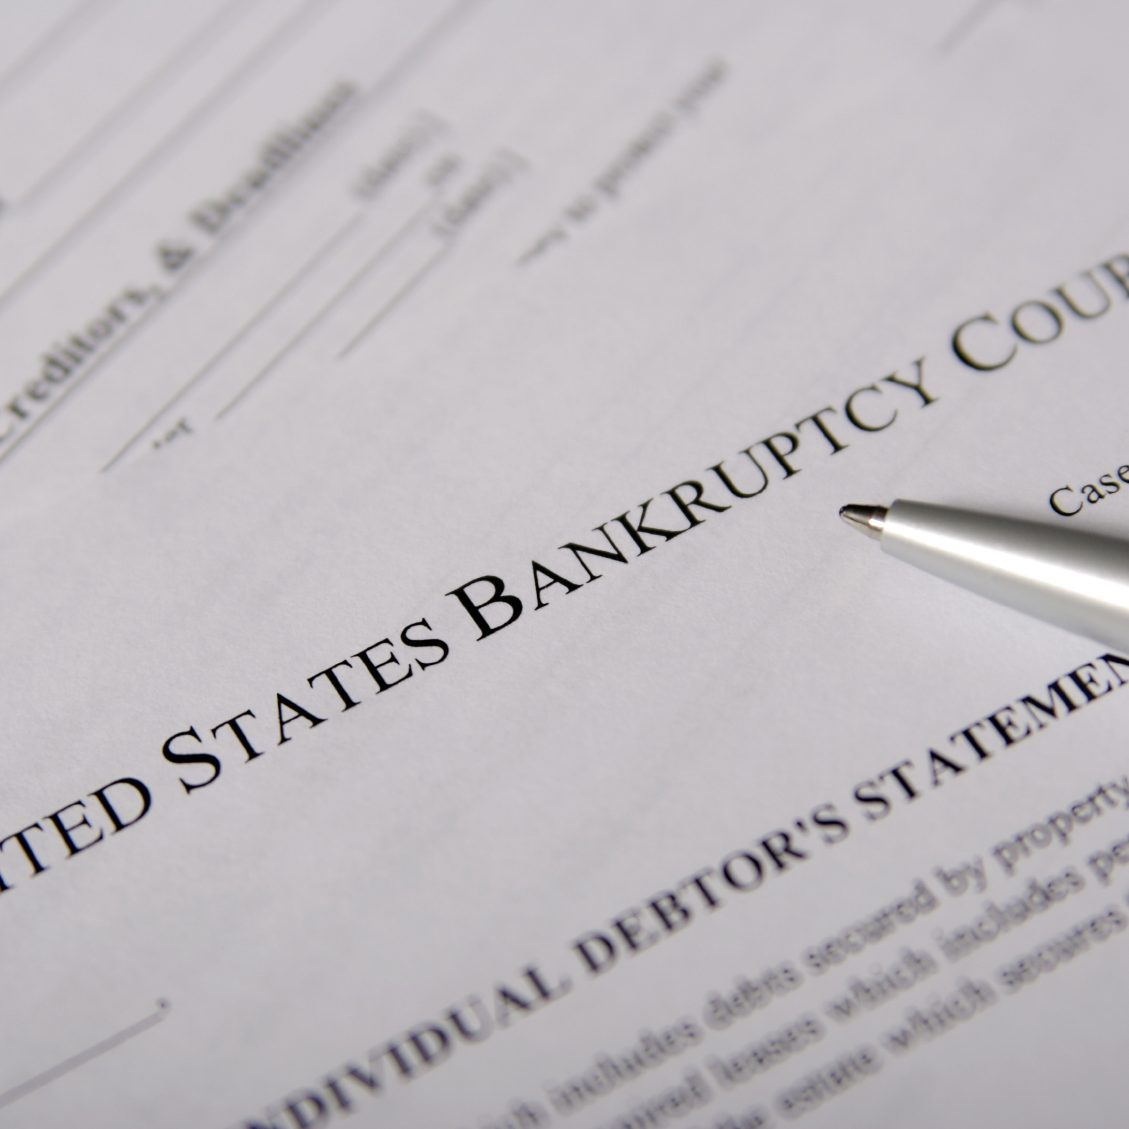 Chapter 7 or Chapter 13 Bankruptcy